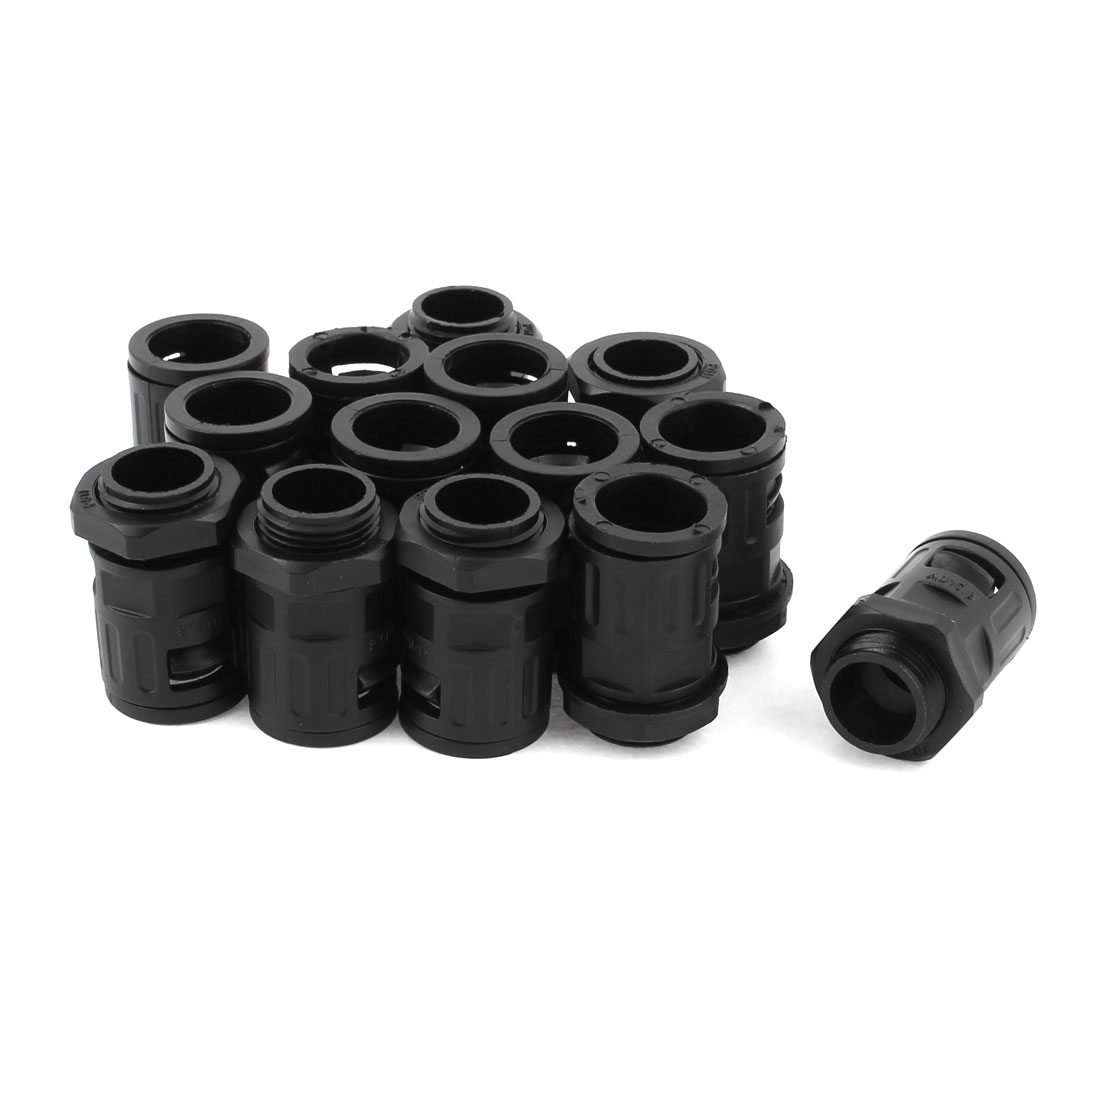 Unique Bargains AD15.8 Corrugated Conduit PG11 18mm Thread Quick Connector Pipe Fitting 14Pcs